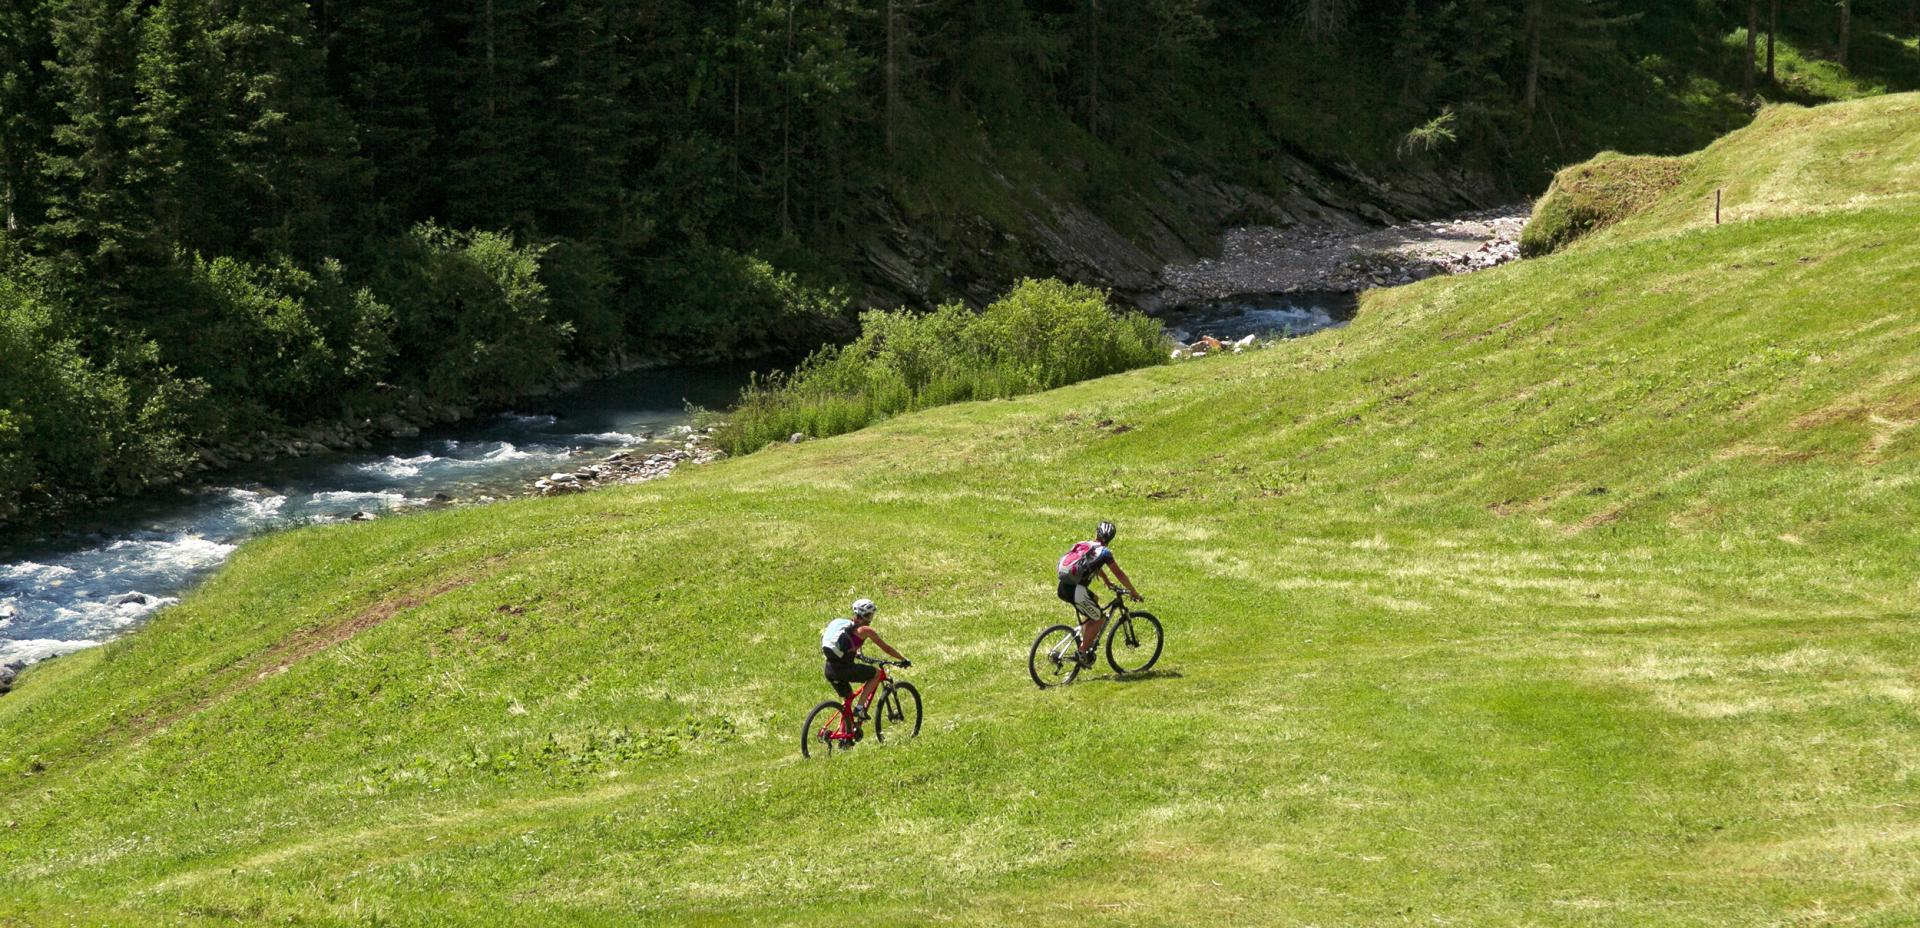 Mountainbike-Tour im Ultental, Südtirol